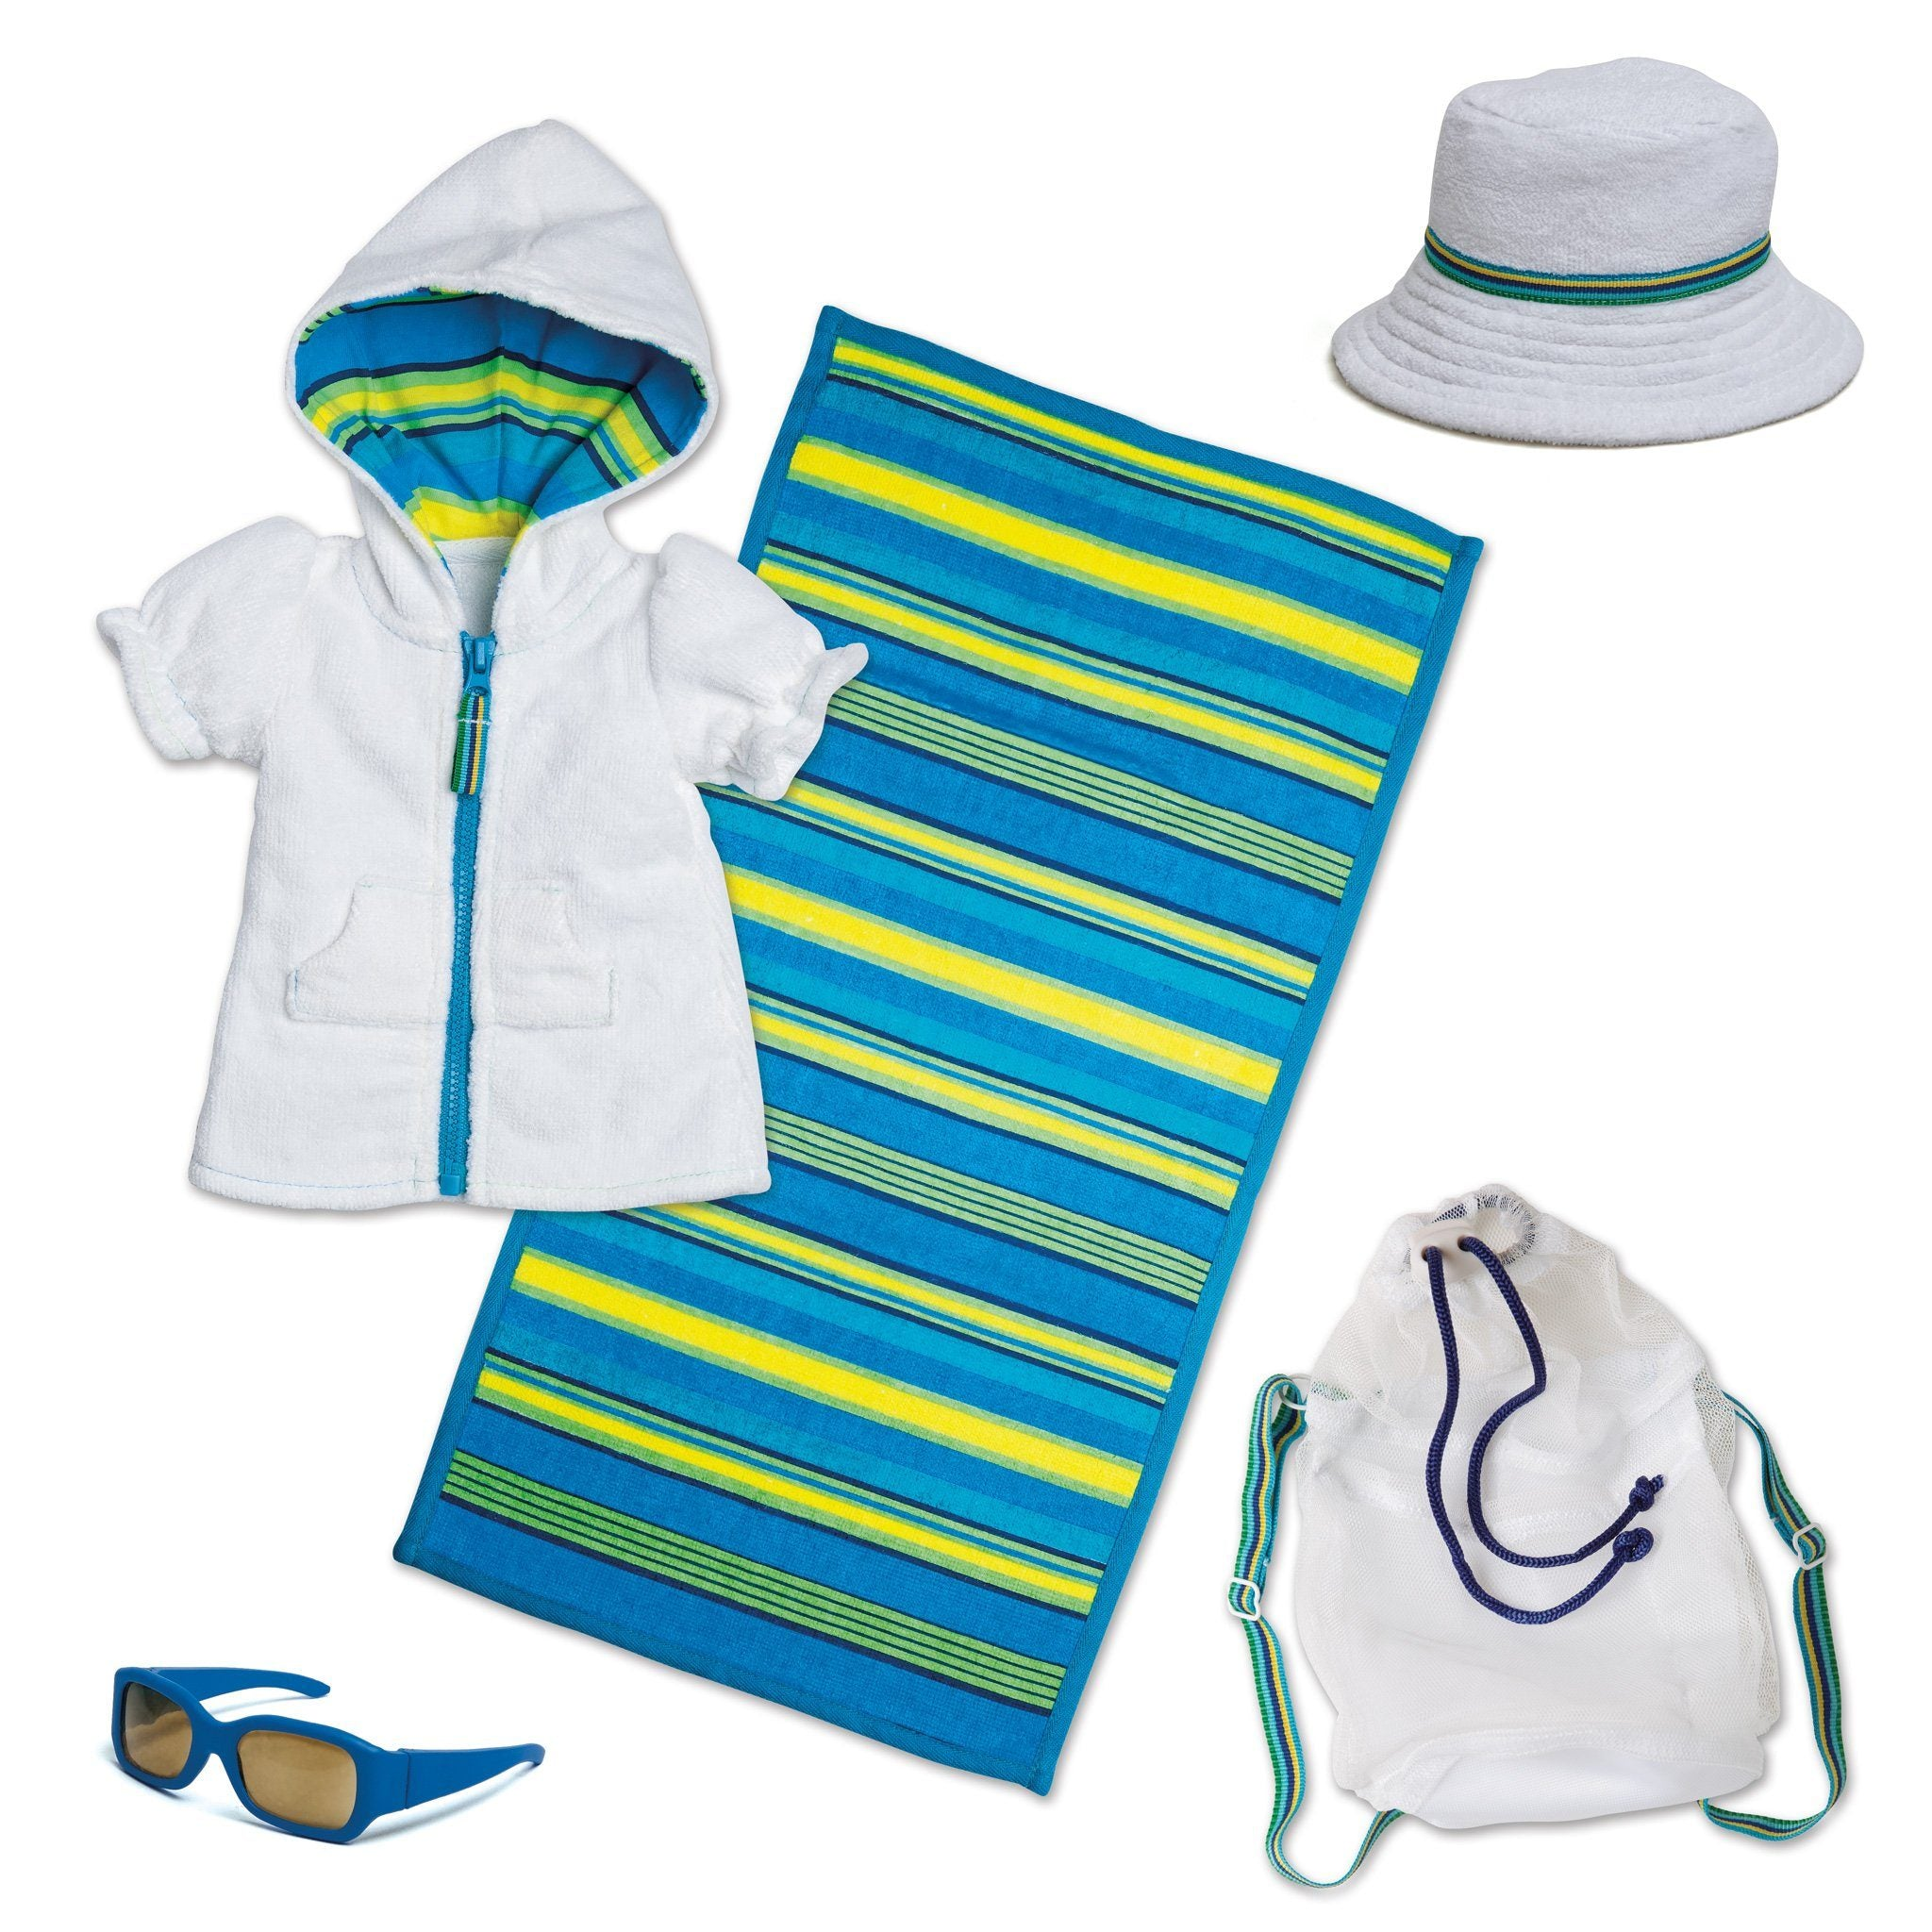 Watercolour Waves whit terry beach cover-up with striped hood lining, terry hat, white mesh beach bag, blue sunglasses and striped terry towel fits all 18 inch dolls.